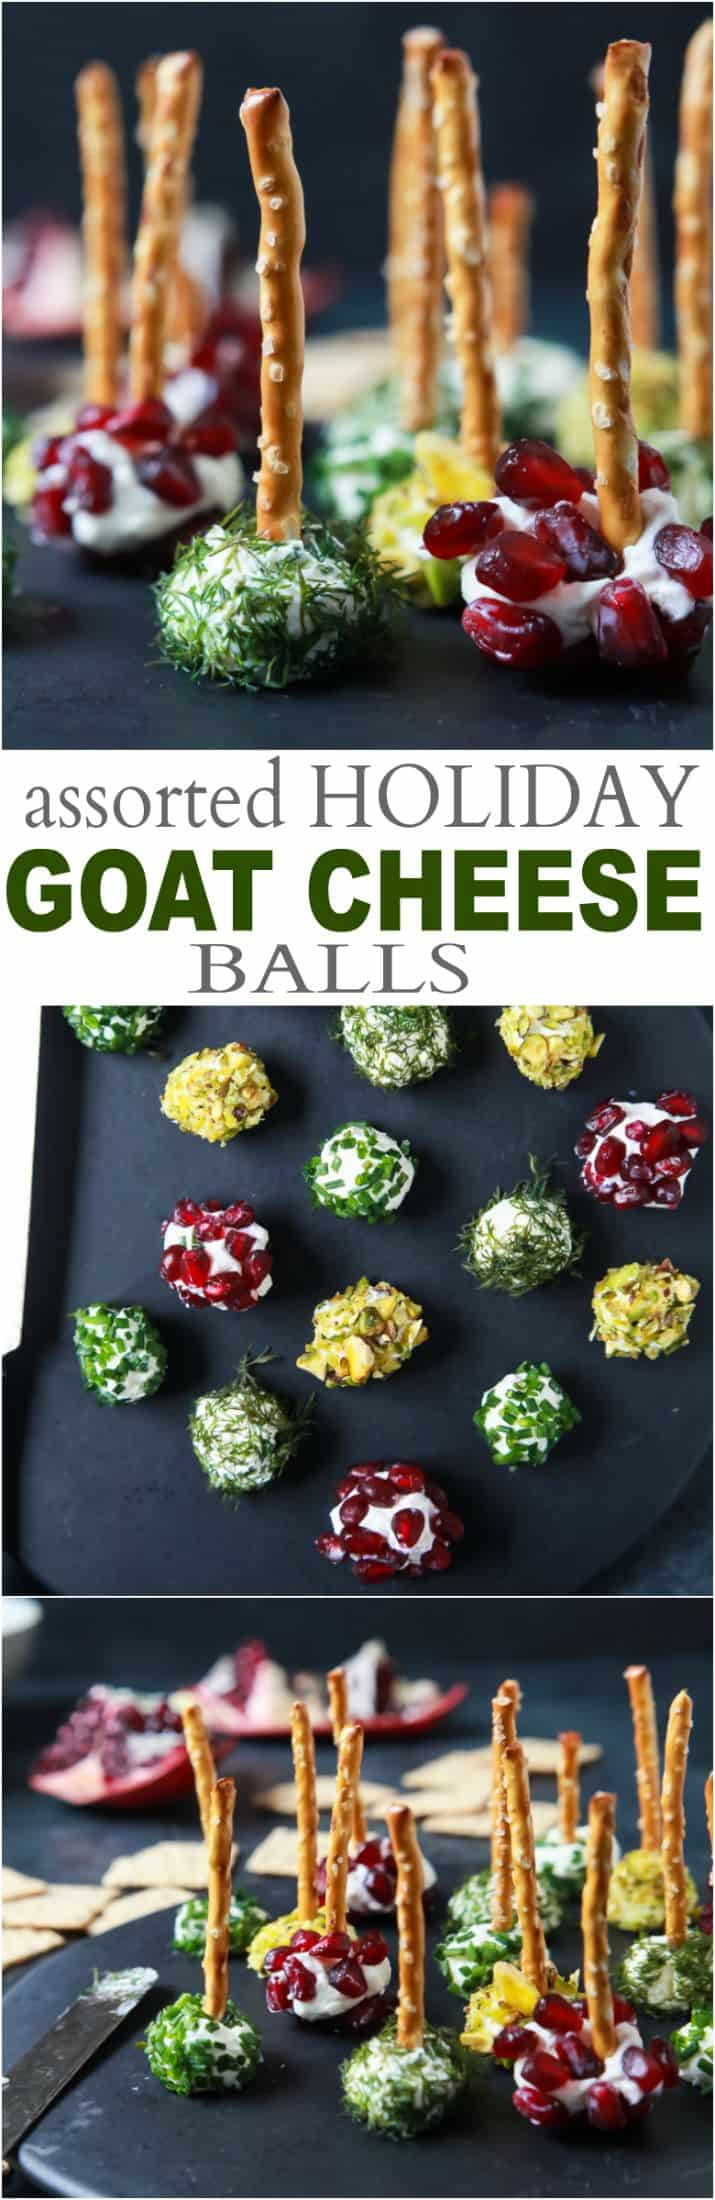 Title Image for Assorted Holiday Goat Cheese Balls with 3 images of goat cheese balls on a plate with pomegranate, pistachio, chives, and dill